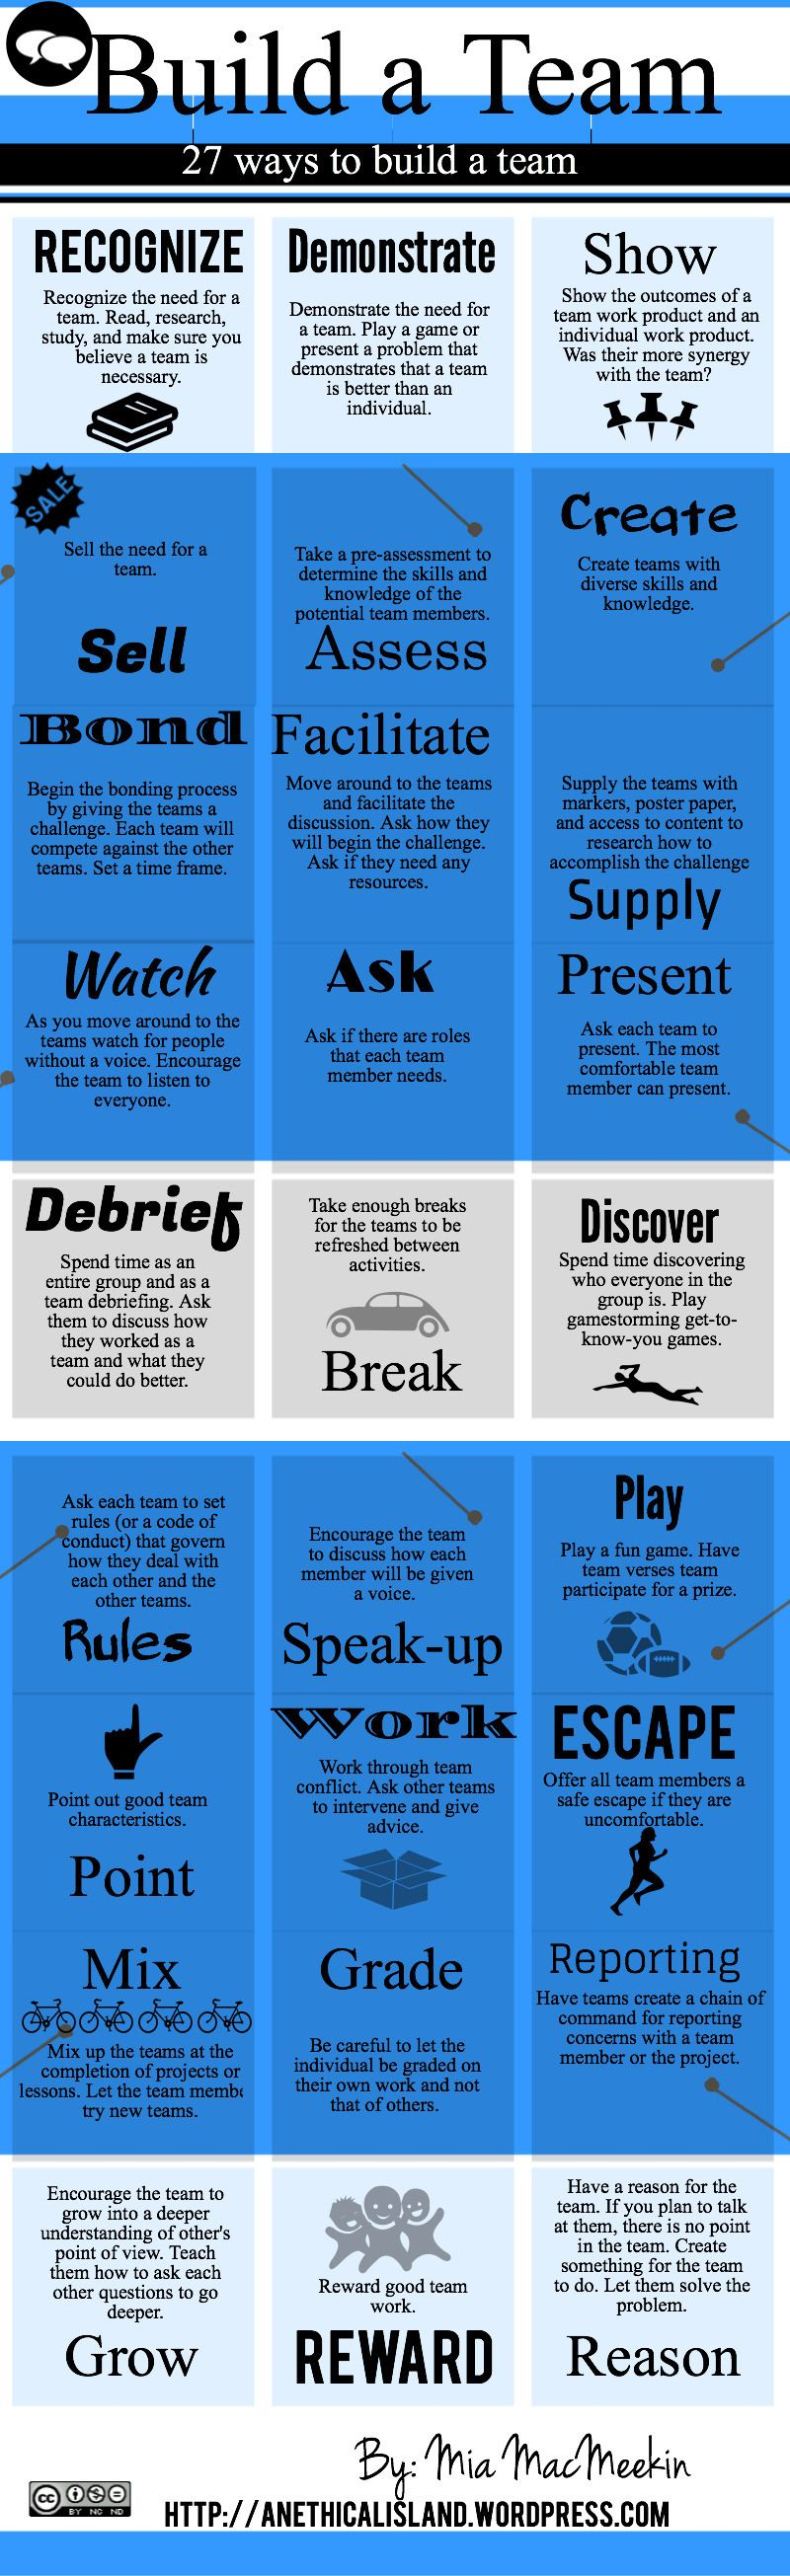 Team Building Quotes Build A Team  Project Management Leadership Quotes And Management